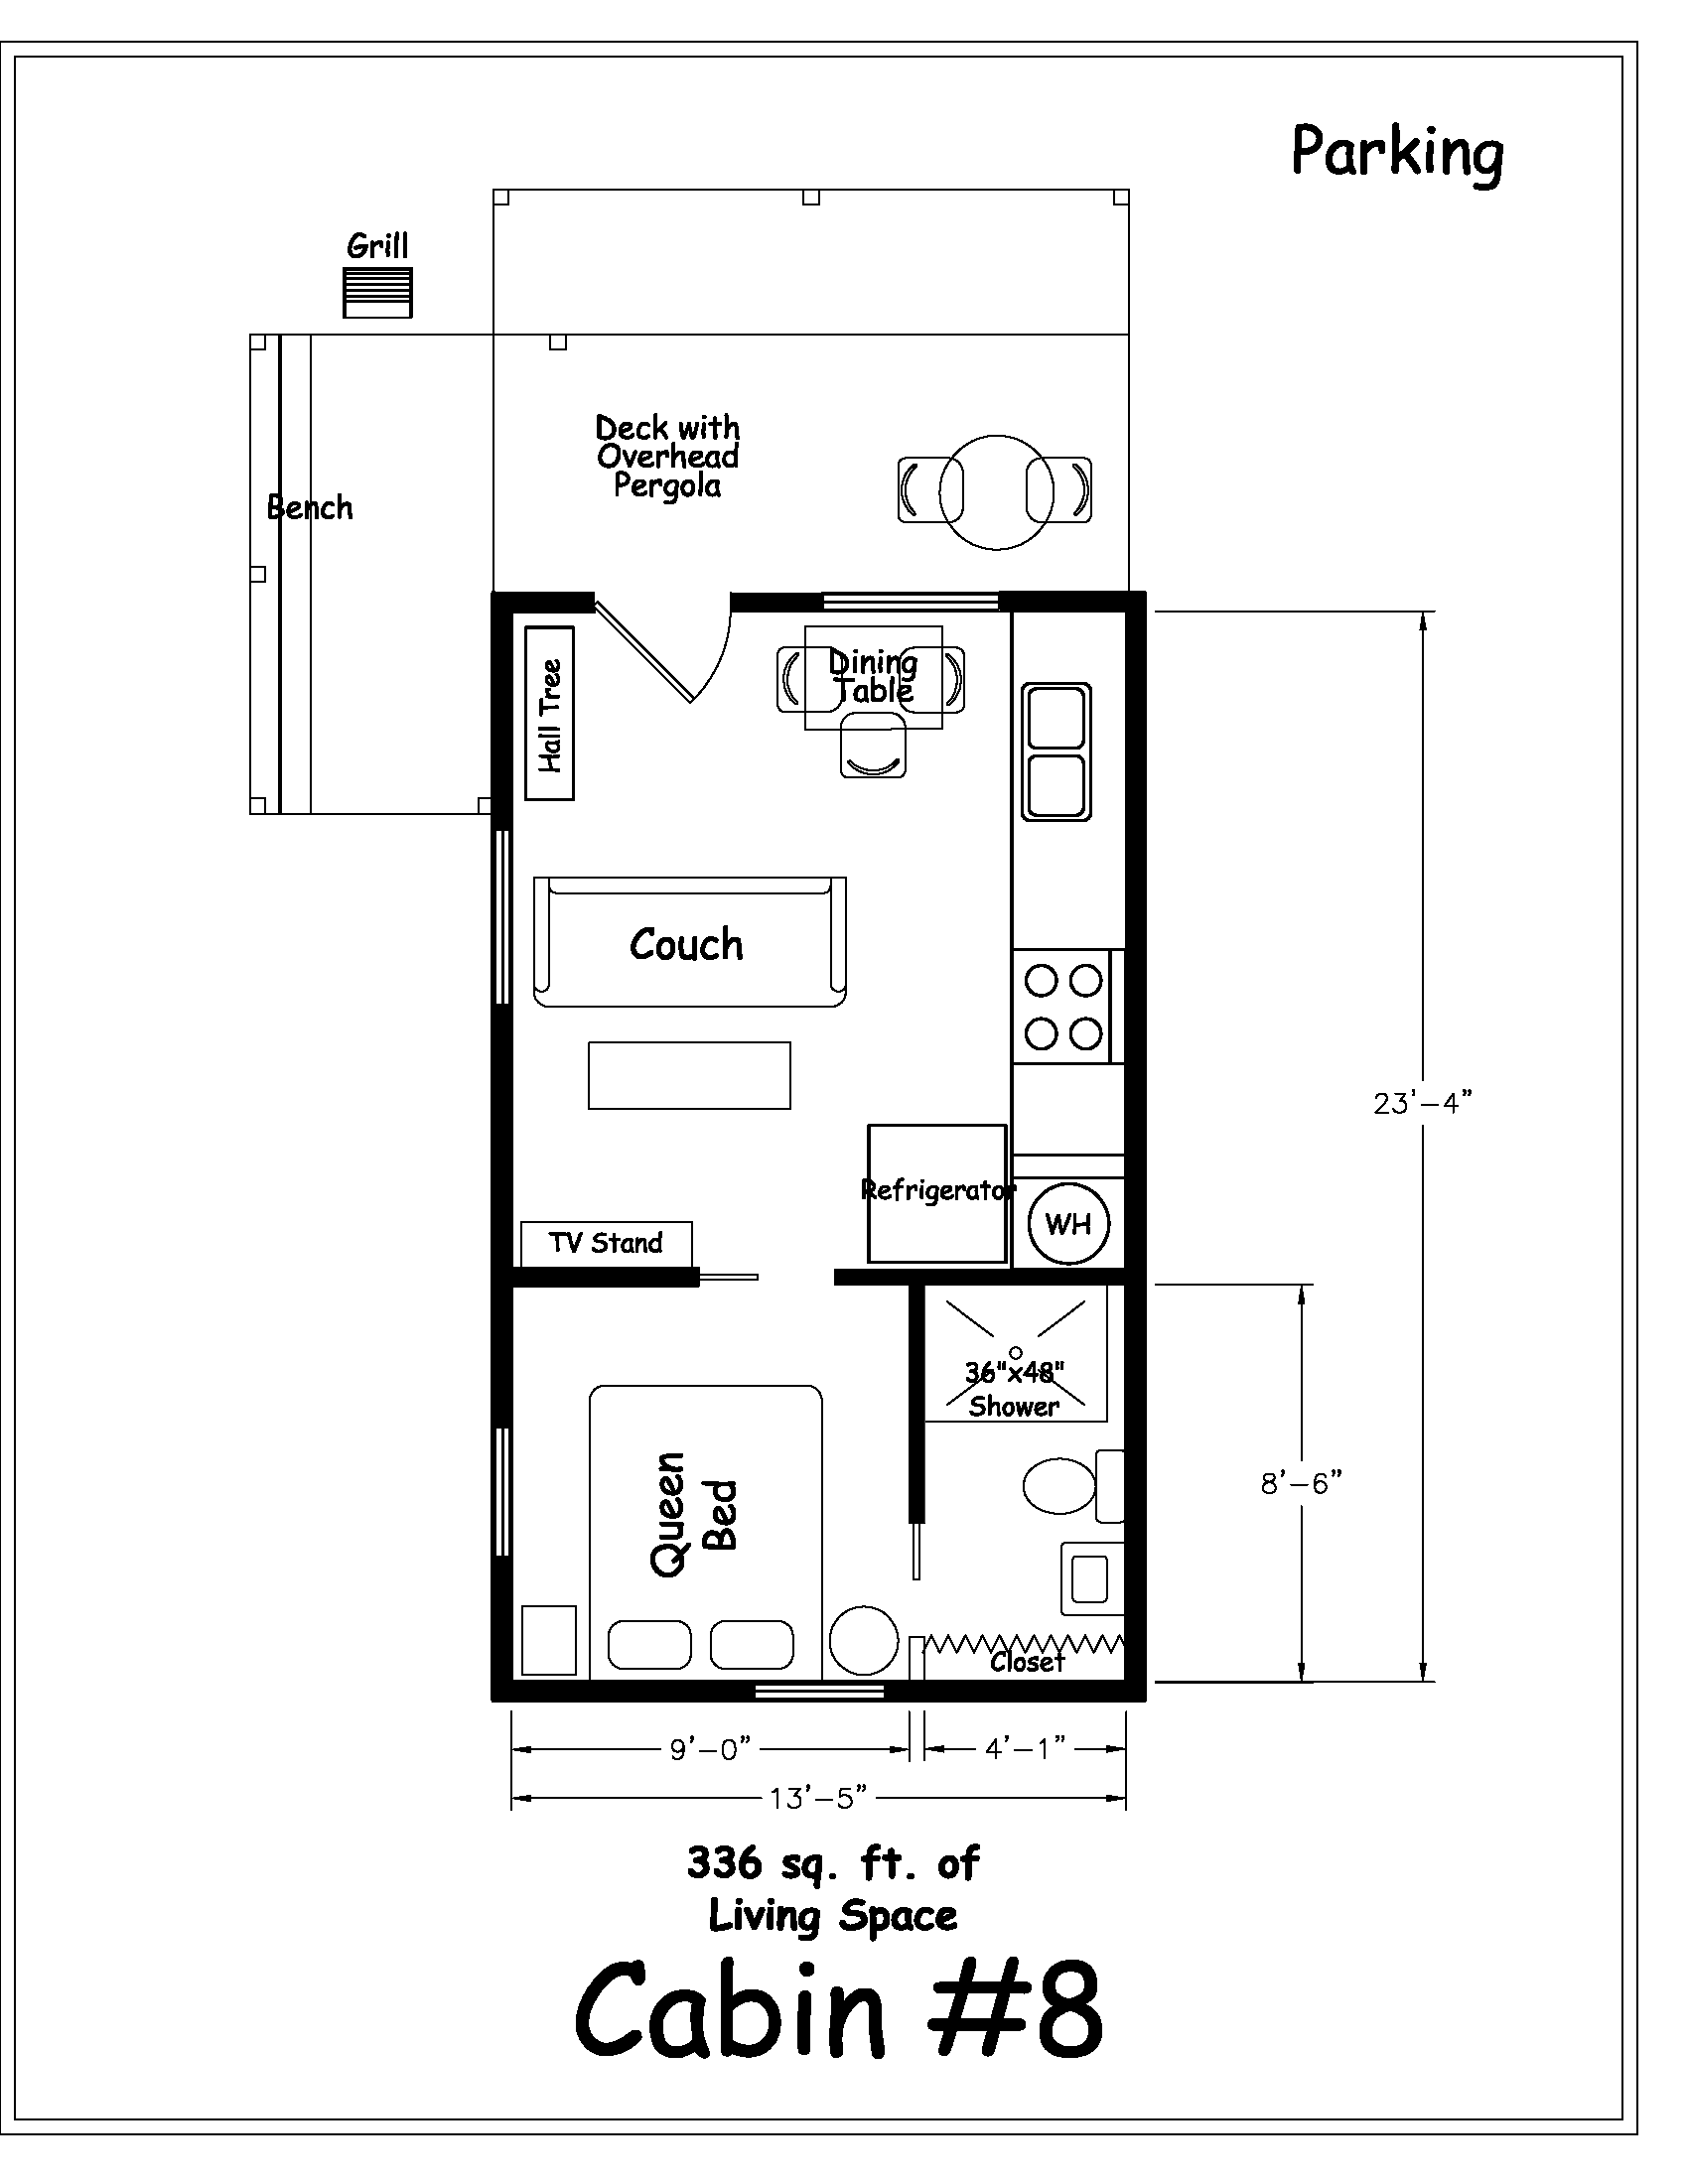 Pdf diy cabin resort plans download cabinet making plywood for Lodge plans with 8 bedrooms